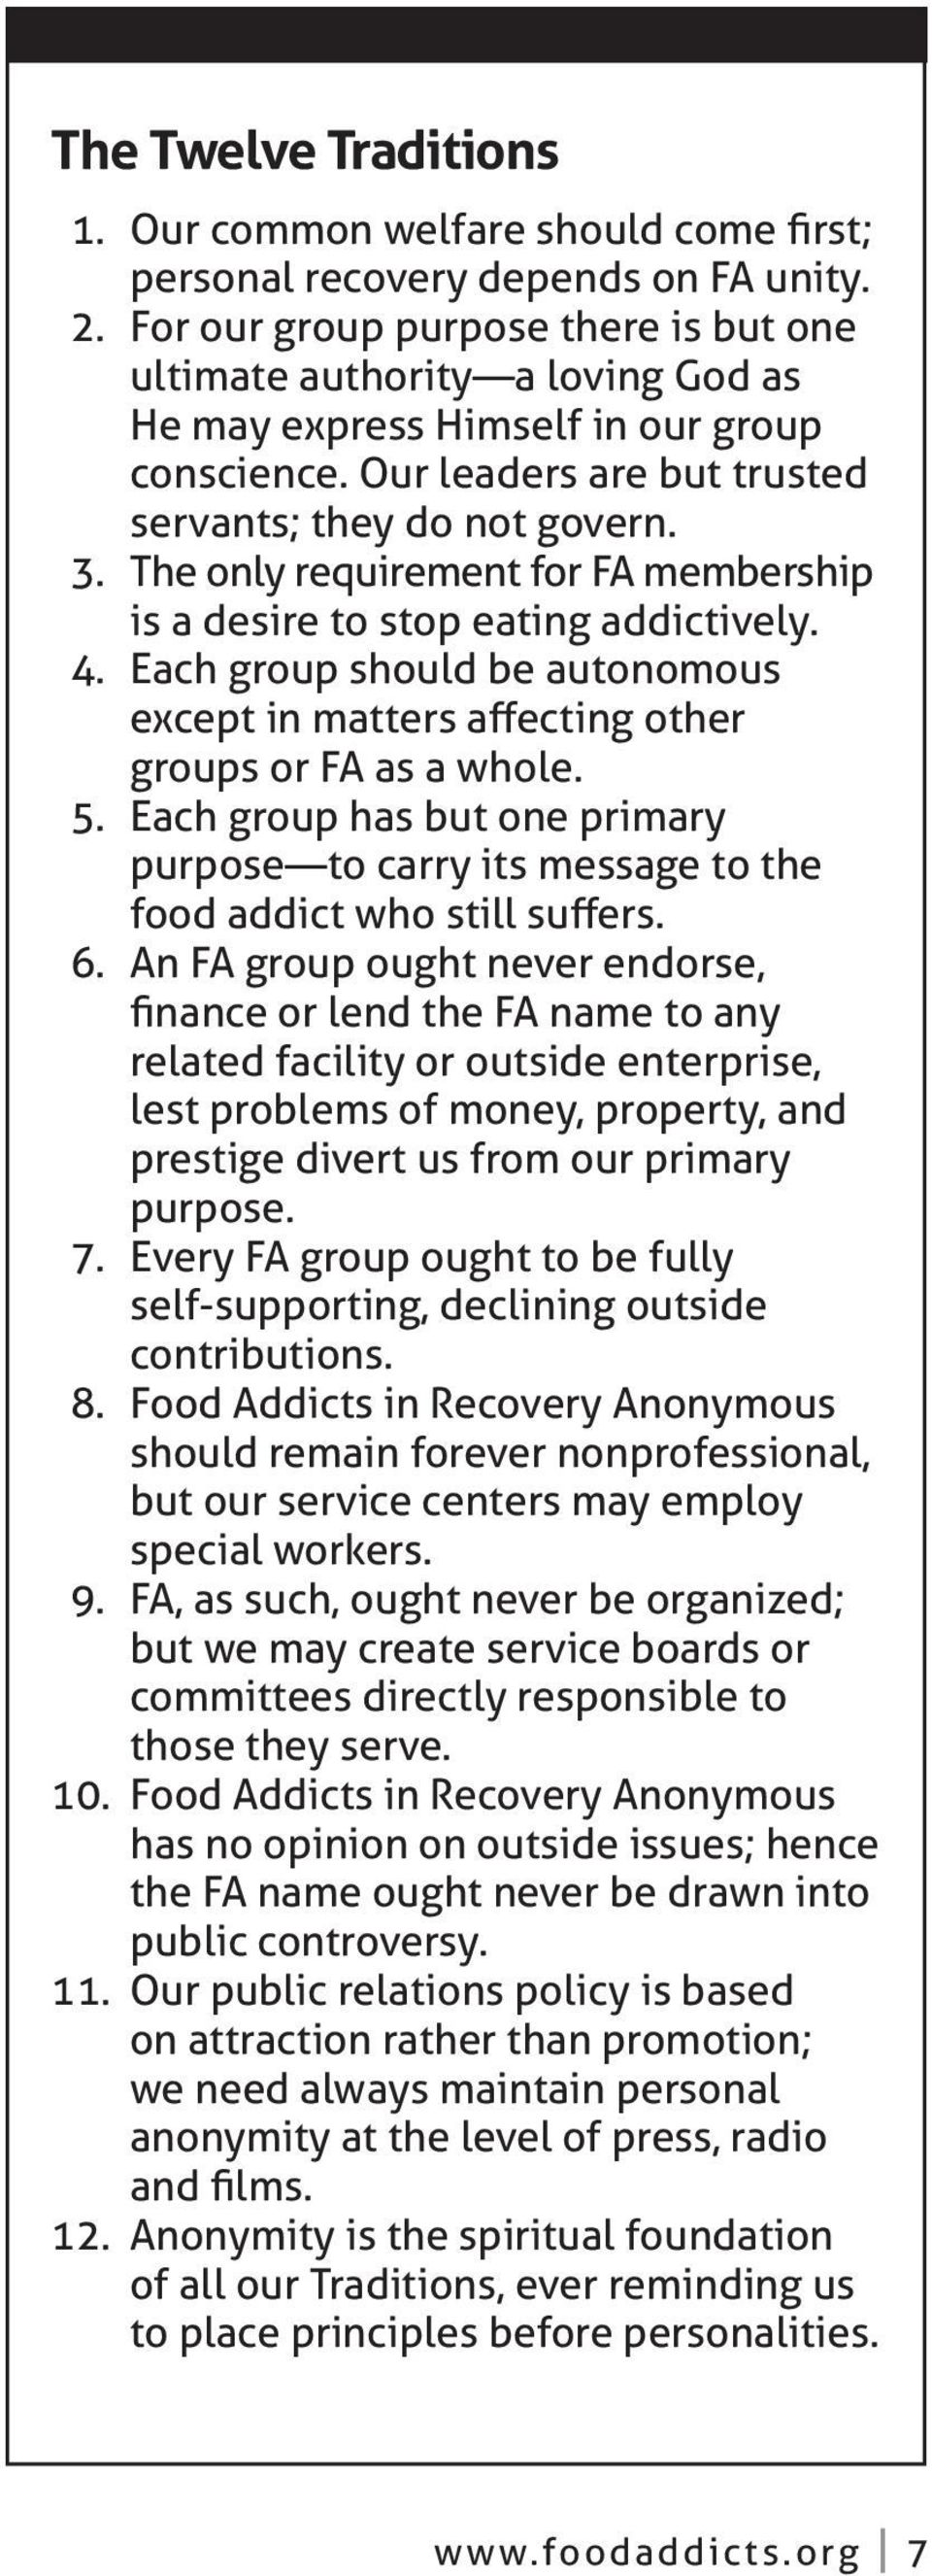 The only requirement for FA membership is a desire to stop eating addictively. 4. Each group should be autonomous except in matters affecting other groups or FA as a whole. 5.